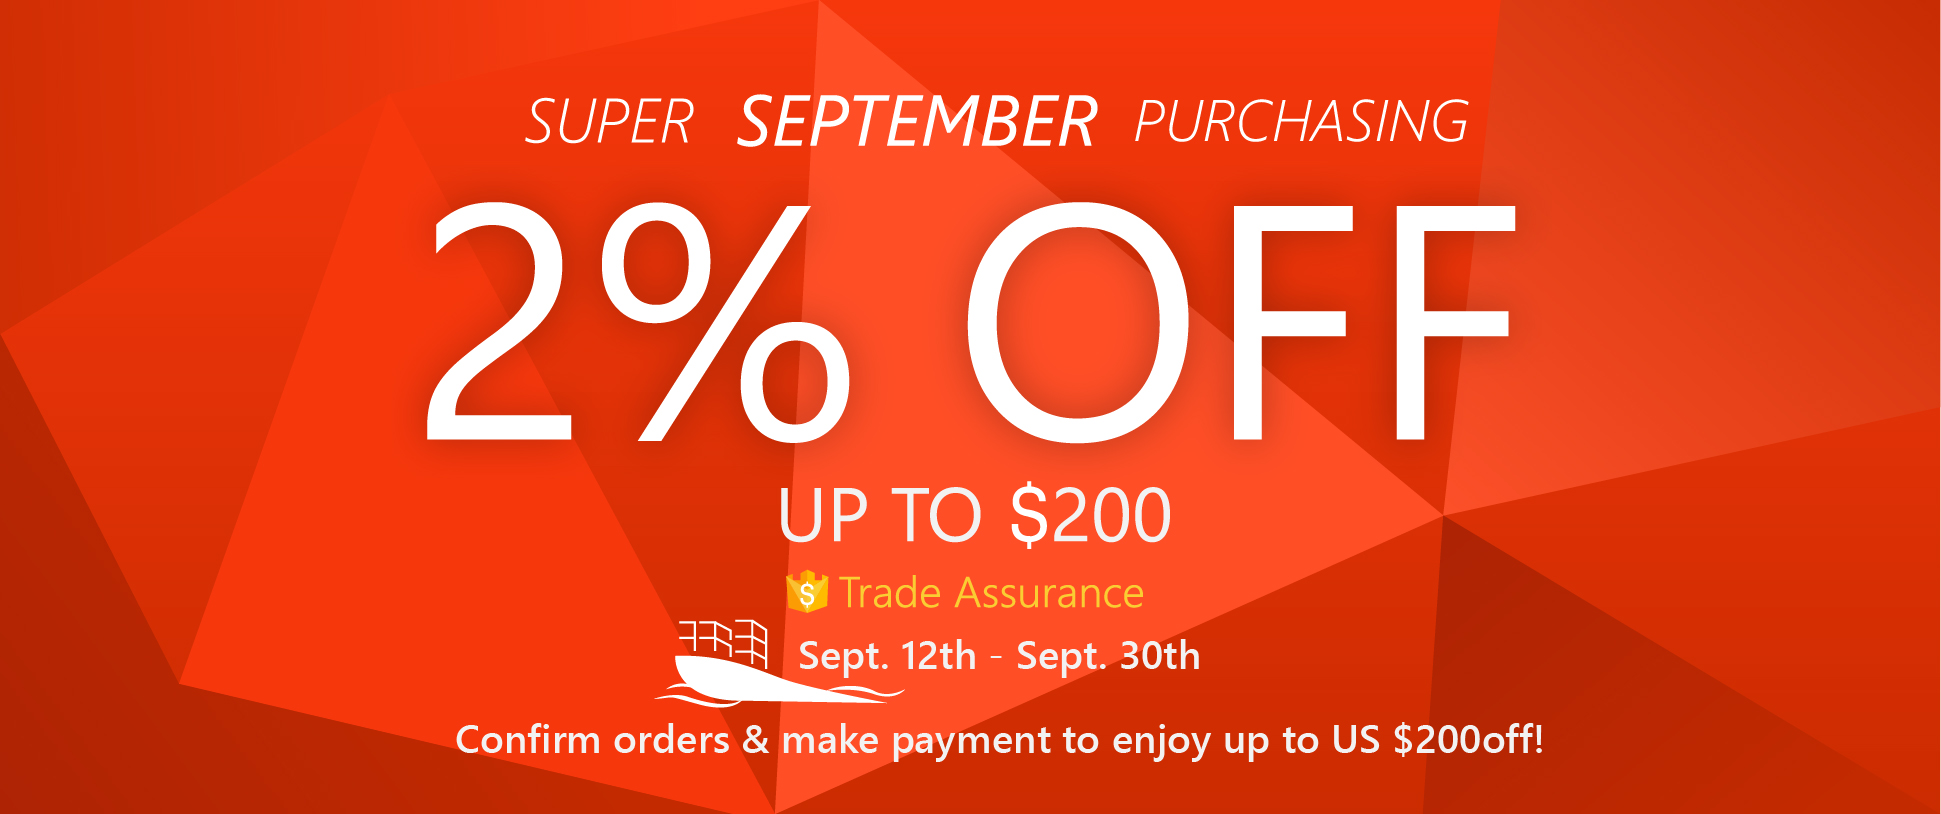 Promotion of September: Alibaba Super September Purchasing!